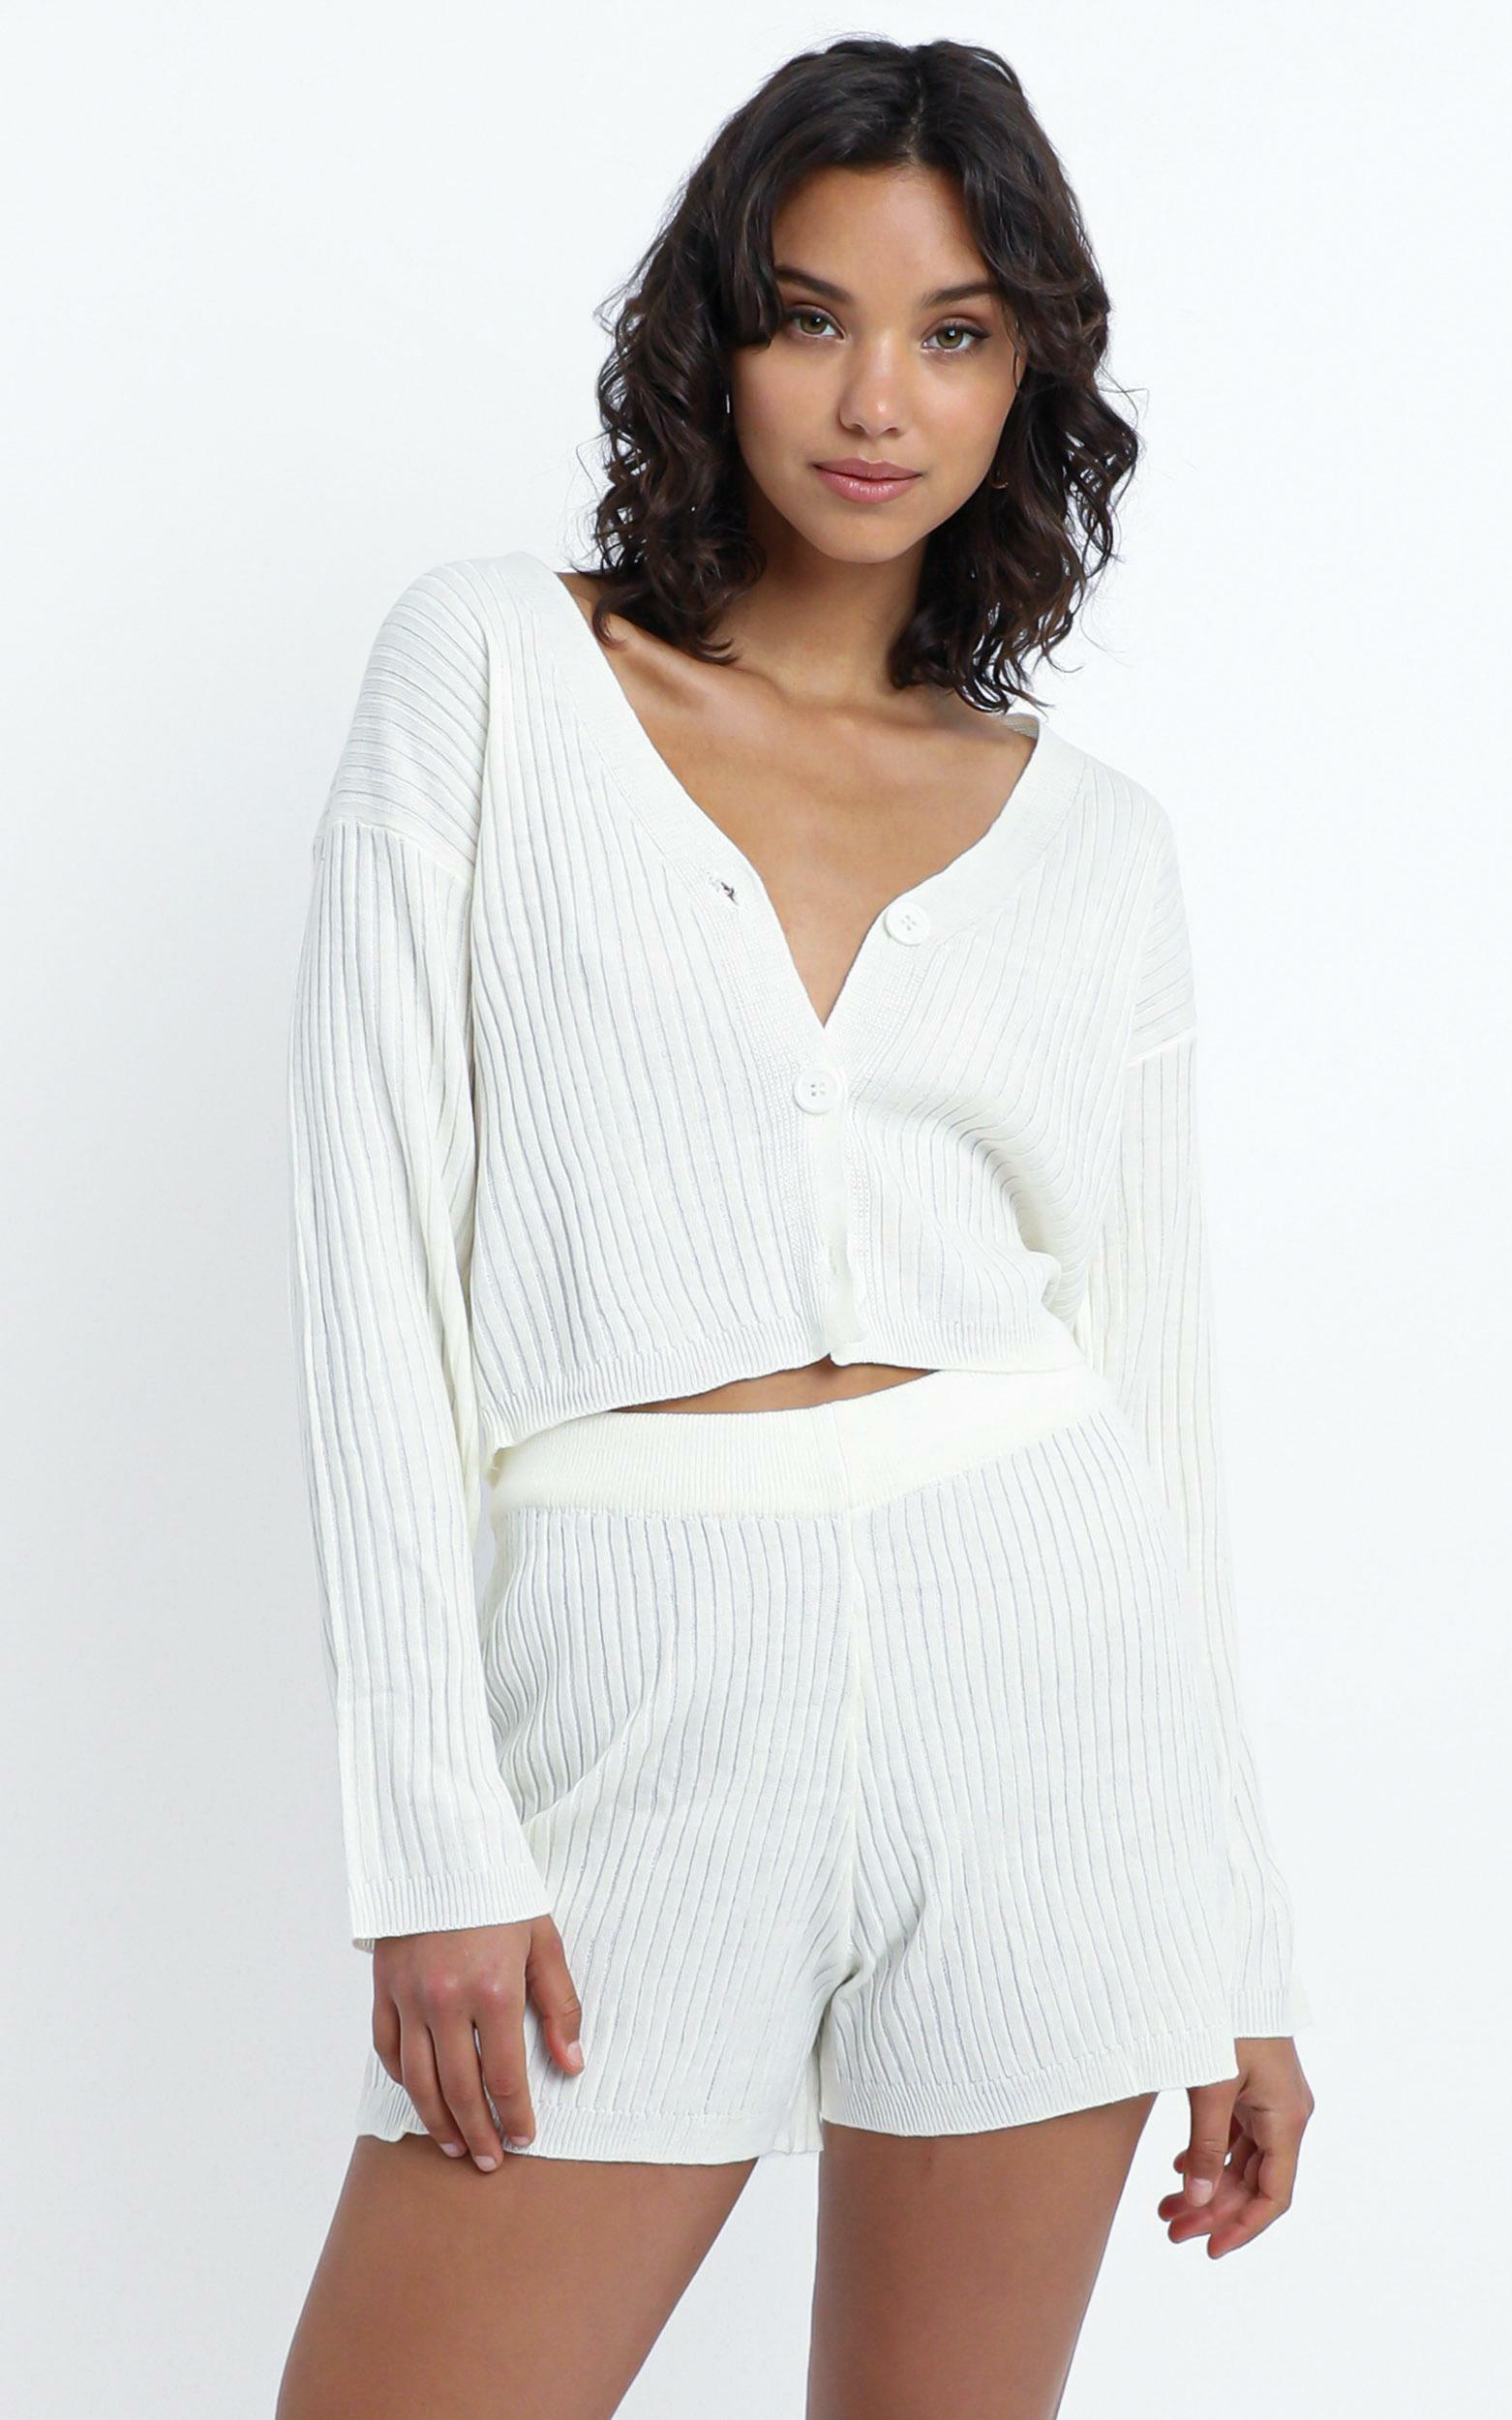 Carrigan Knit Two Piece Set in White - L, White, hi-res image number null